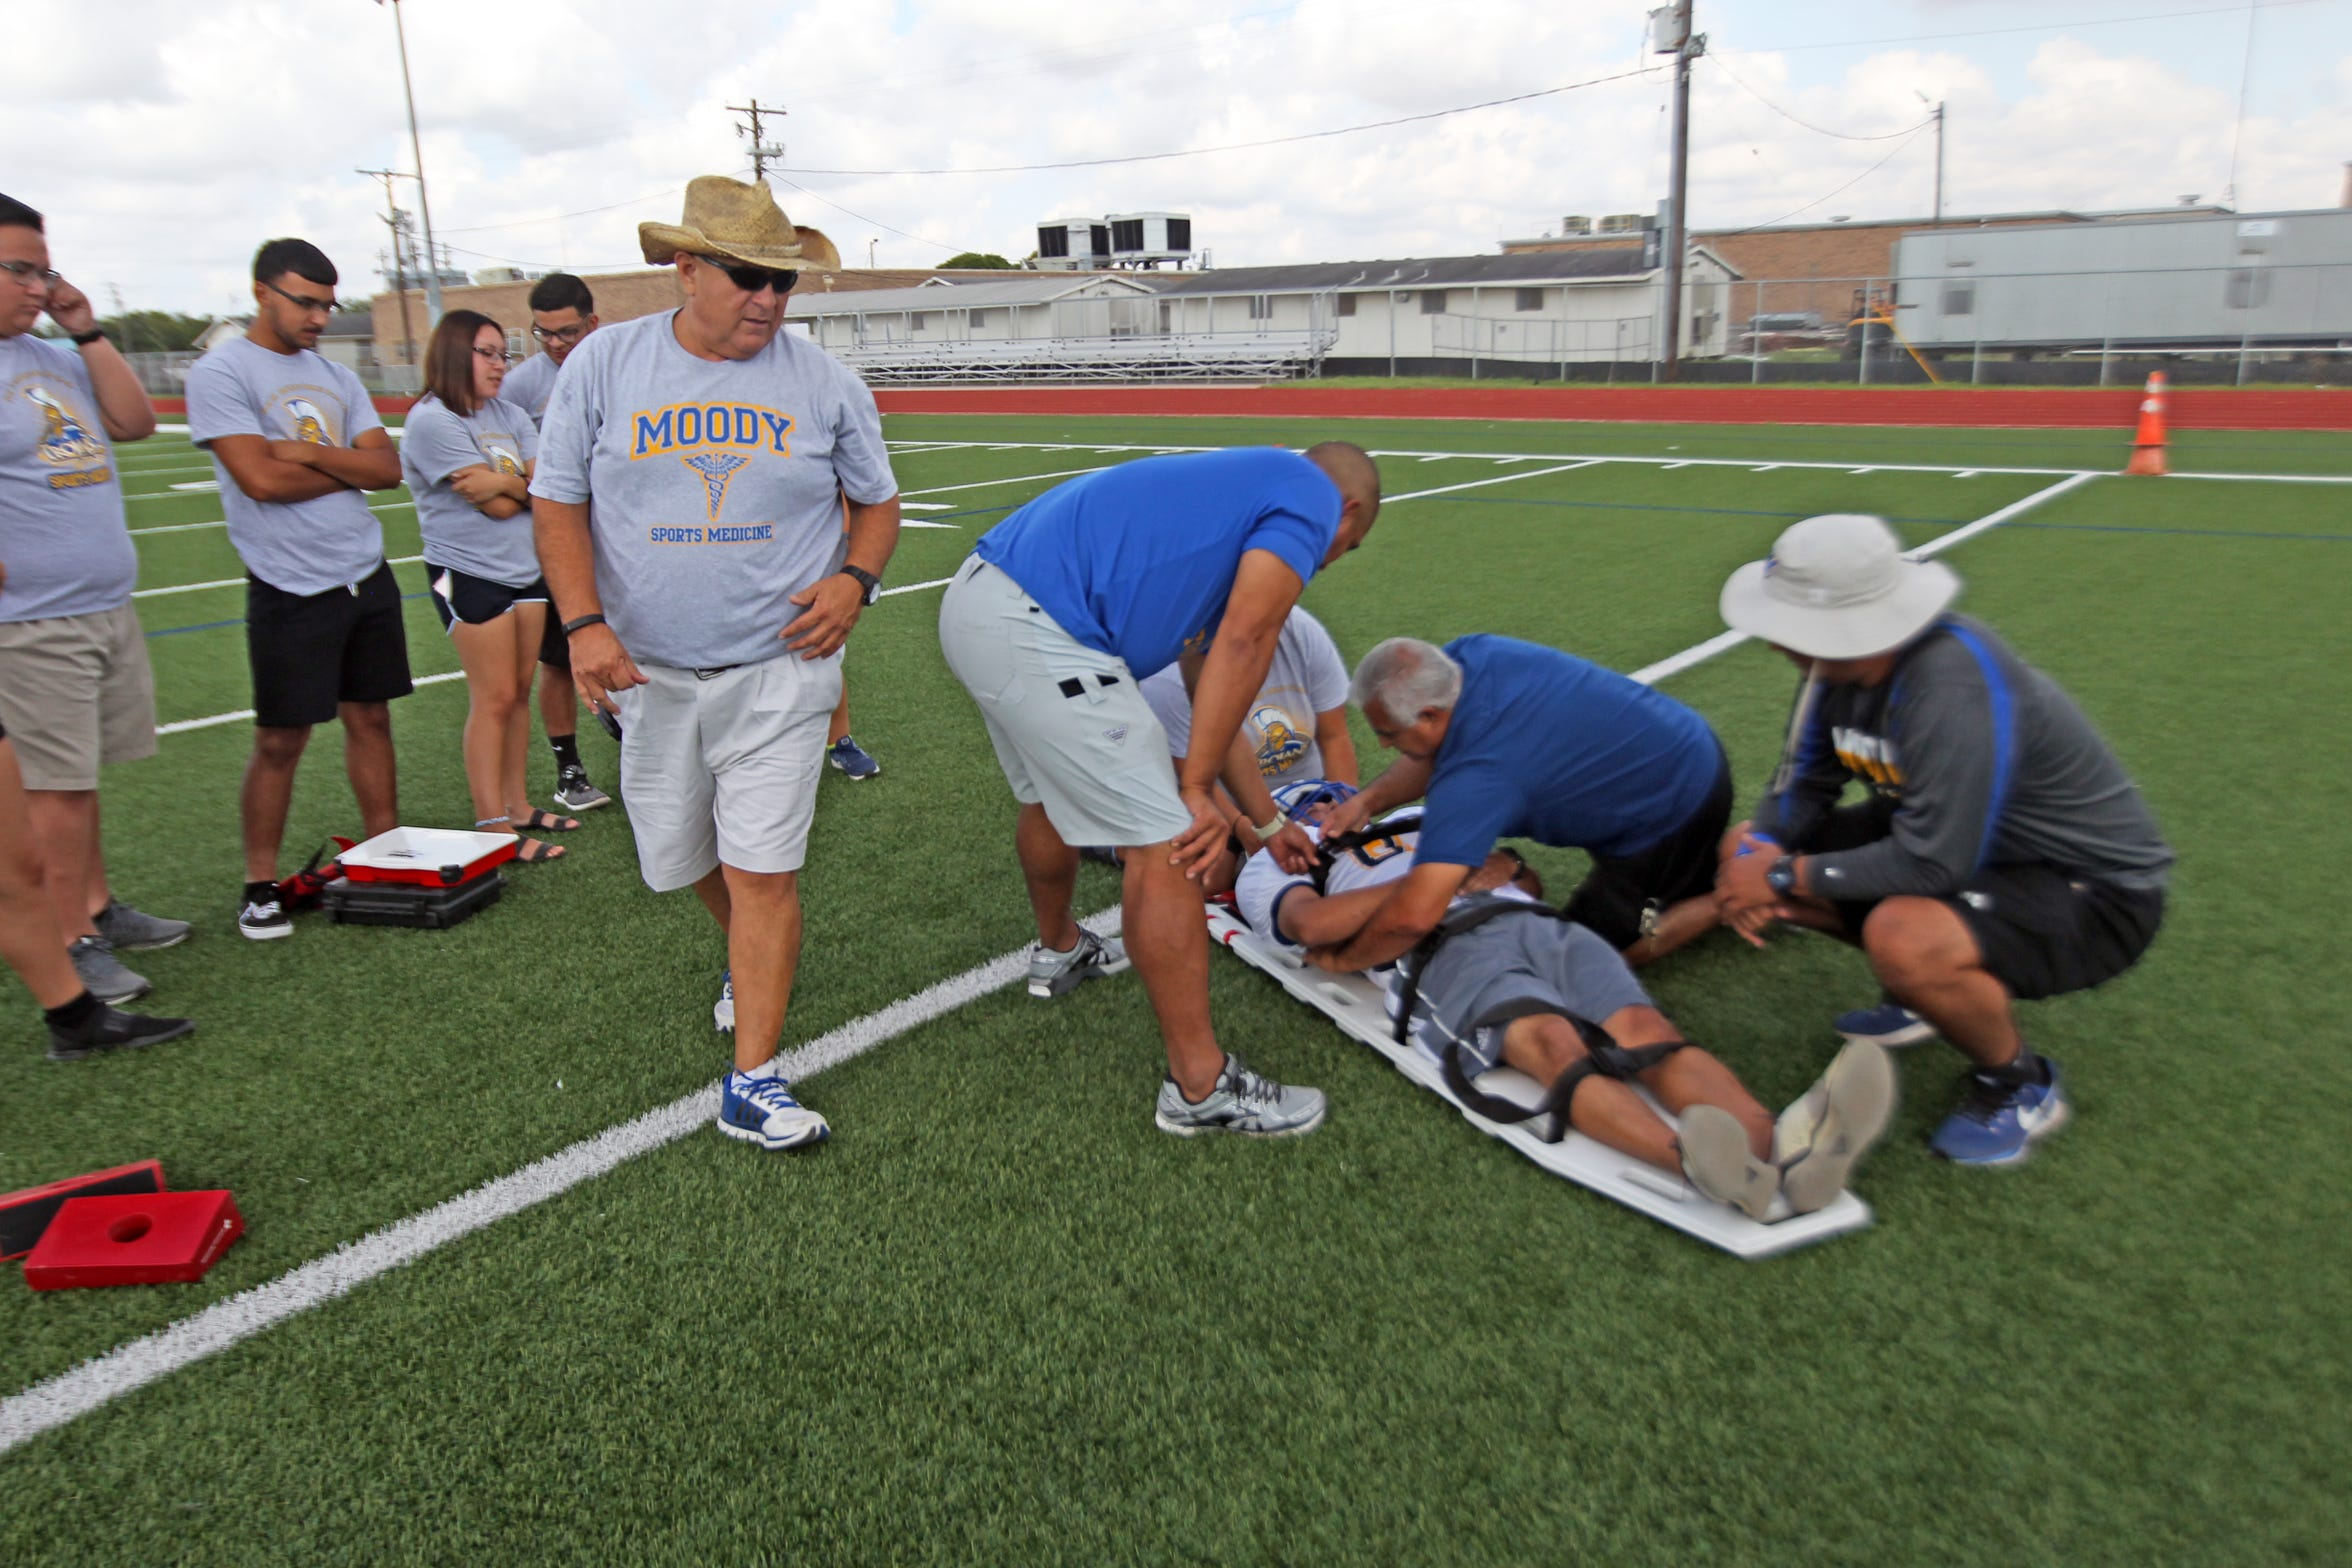 Part of the training on how to handle injured players involves making sure the player is not lying on a bed of fire ants. This is not an issue on artificial turf.